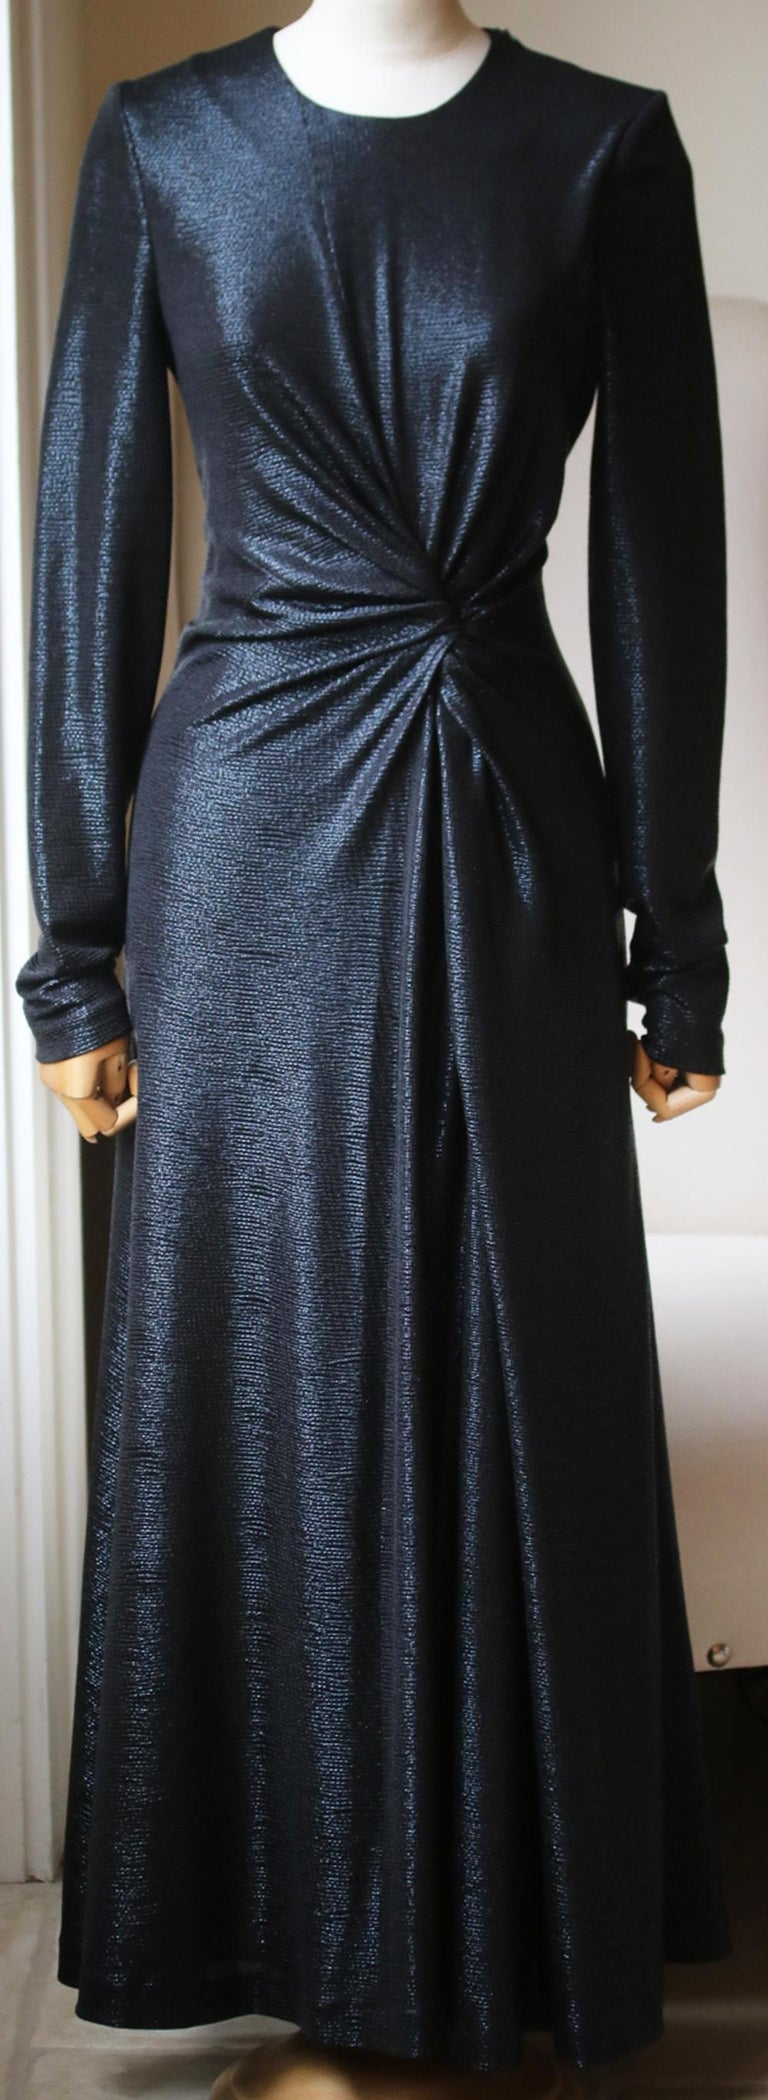 Shimmering metallic dress with a twist-front detail that drapes down to a swinging skirt that has a thigh-high side slit. Round neck. Long sleeves. Concealed zip closure. In black. 95% polyester, 5% spandex.   Size: UK 10 (UK 6, FR 38, IT